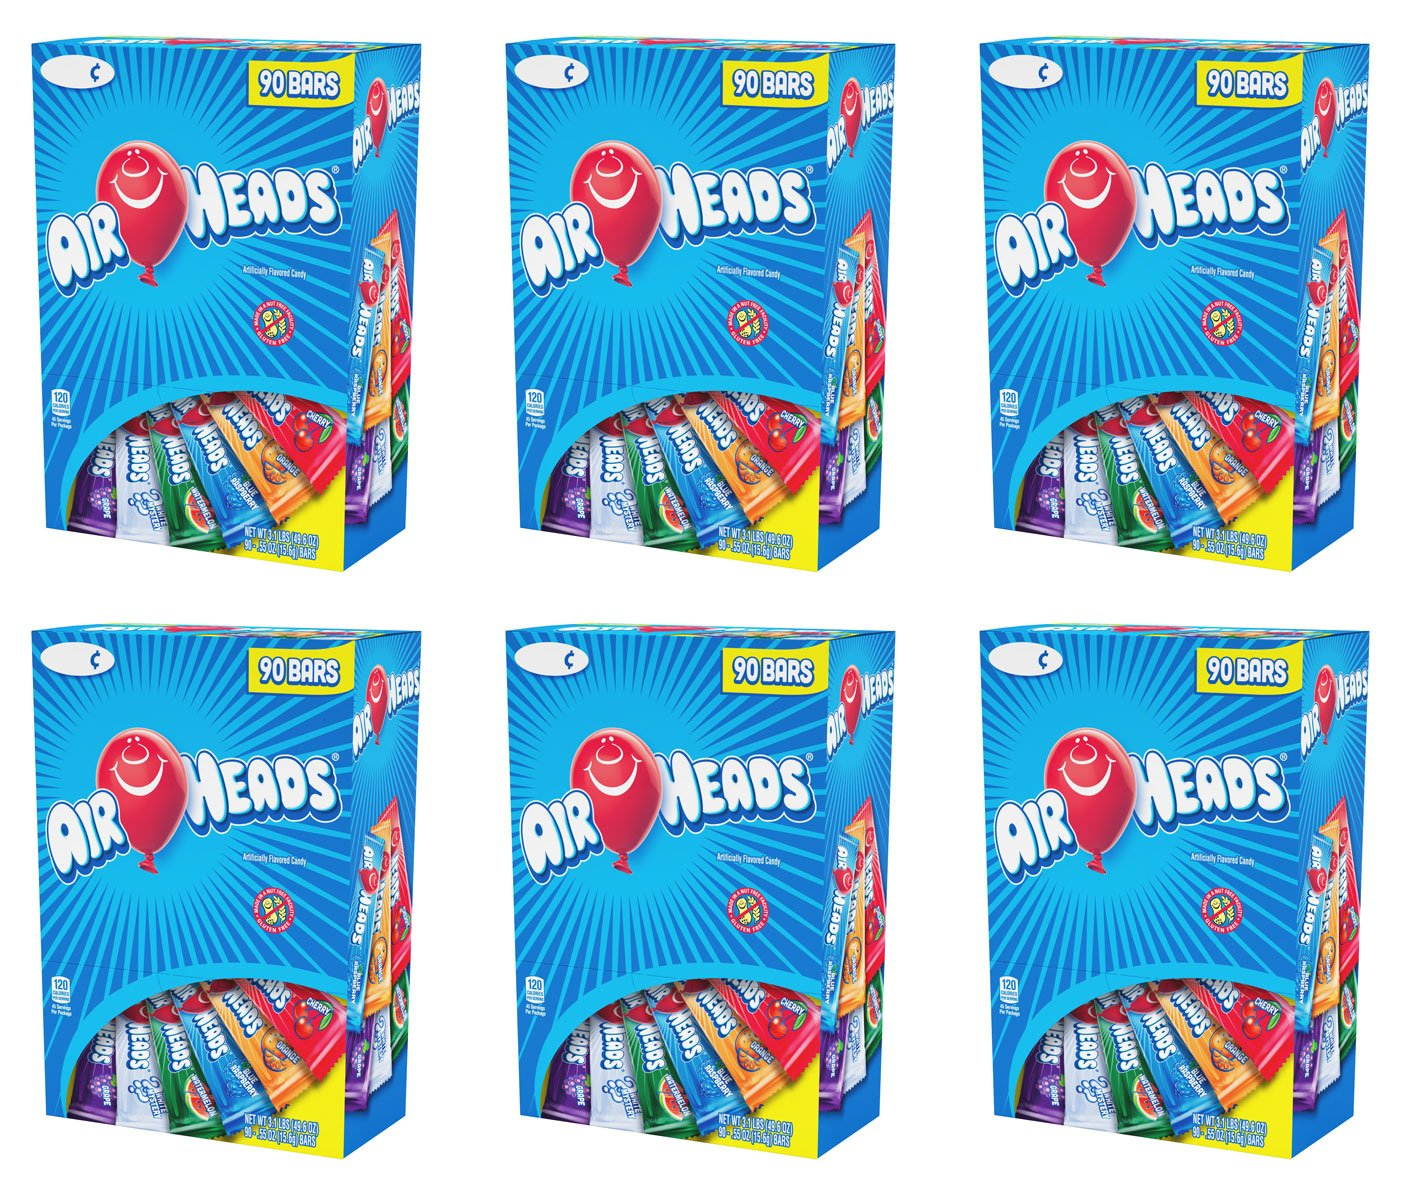 Airheads Chewy Fruit Candy, stocking stuffer, Variety Pack, 90 Count, 3.1lbs, 6 Pack